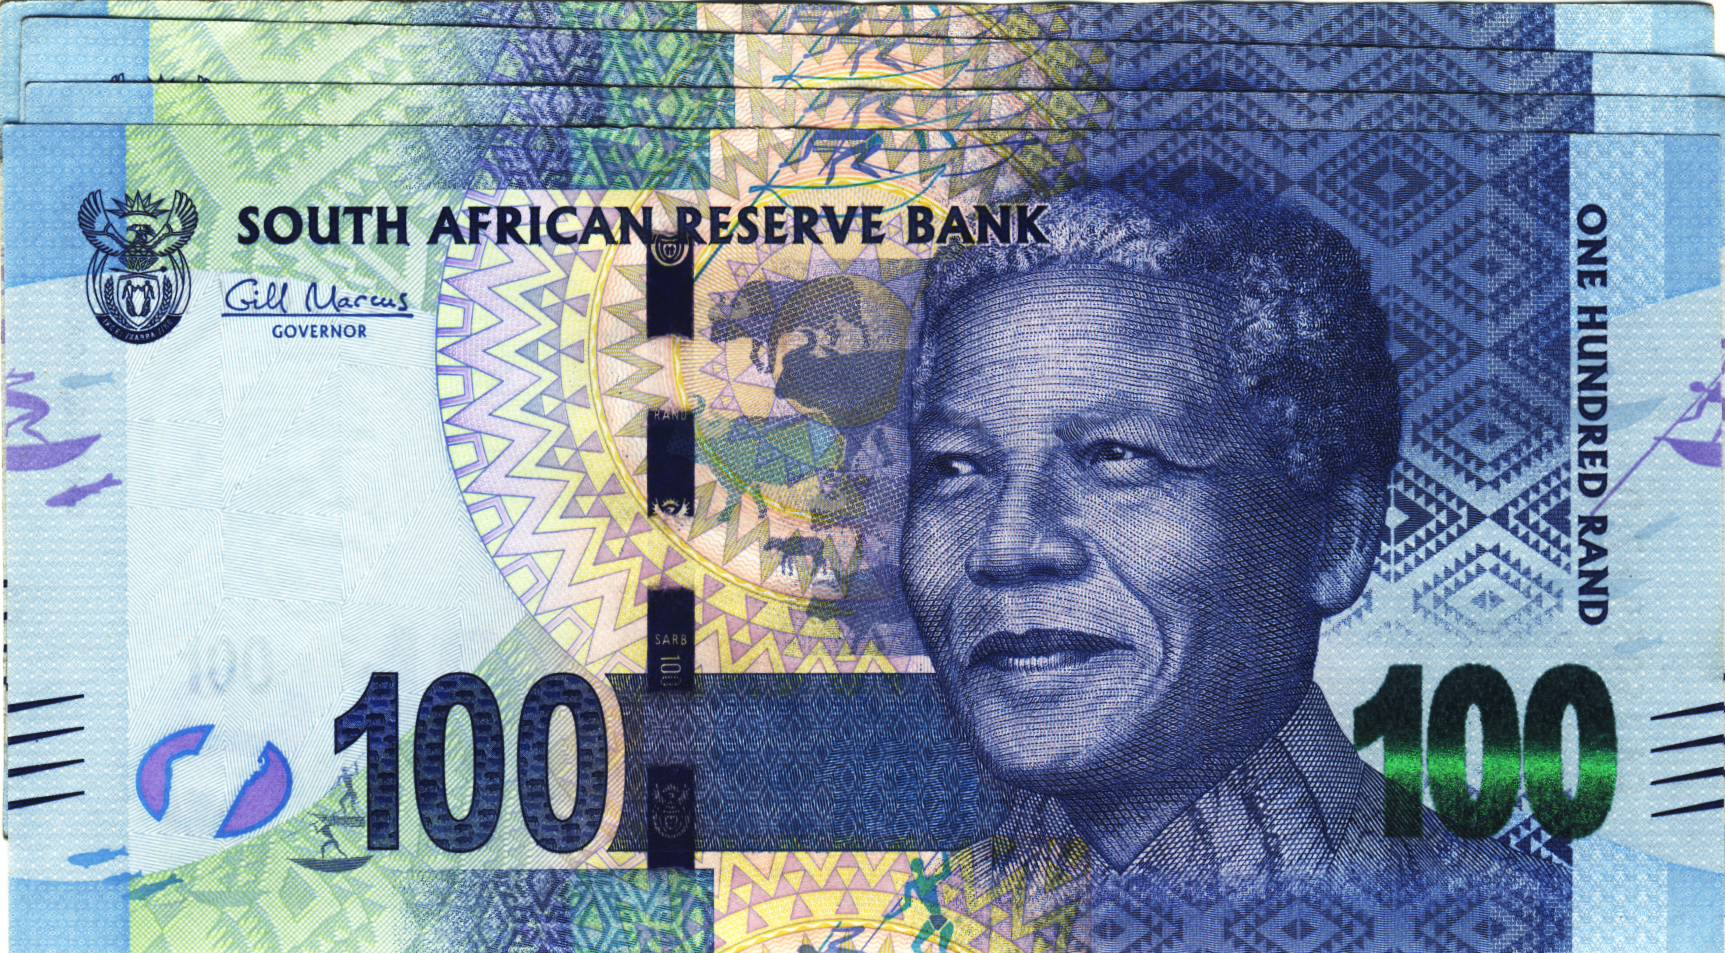 Two Arrested In Lanseria For Counterfeit Money Enca